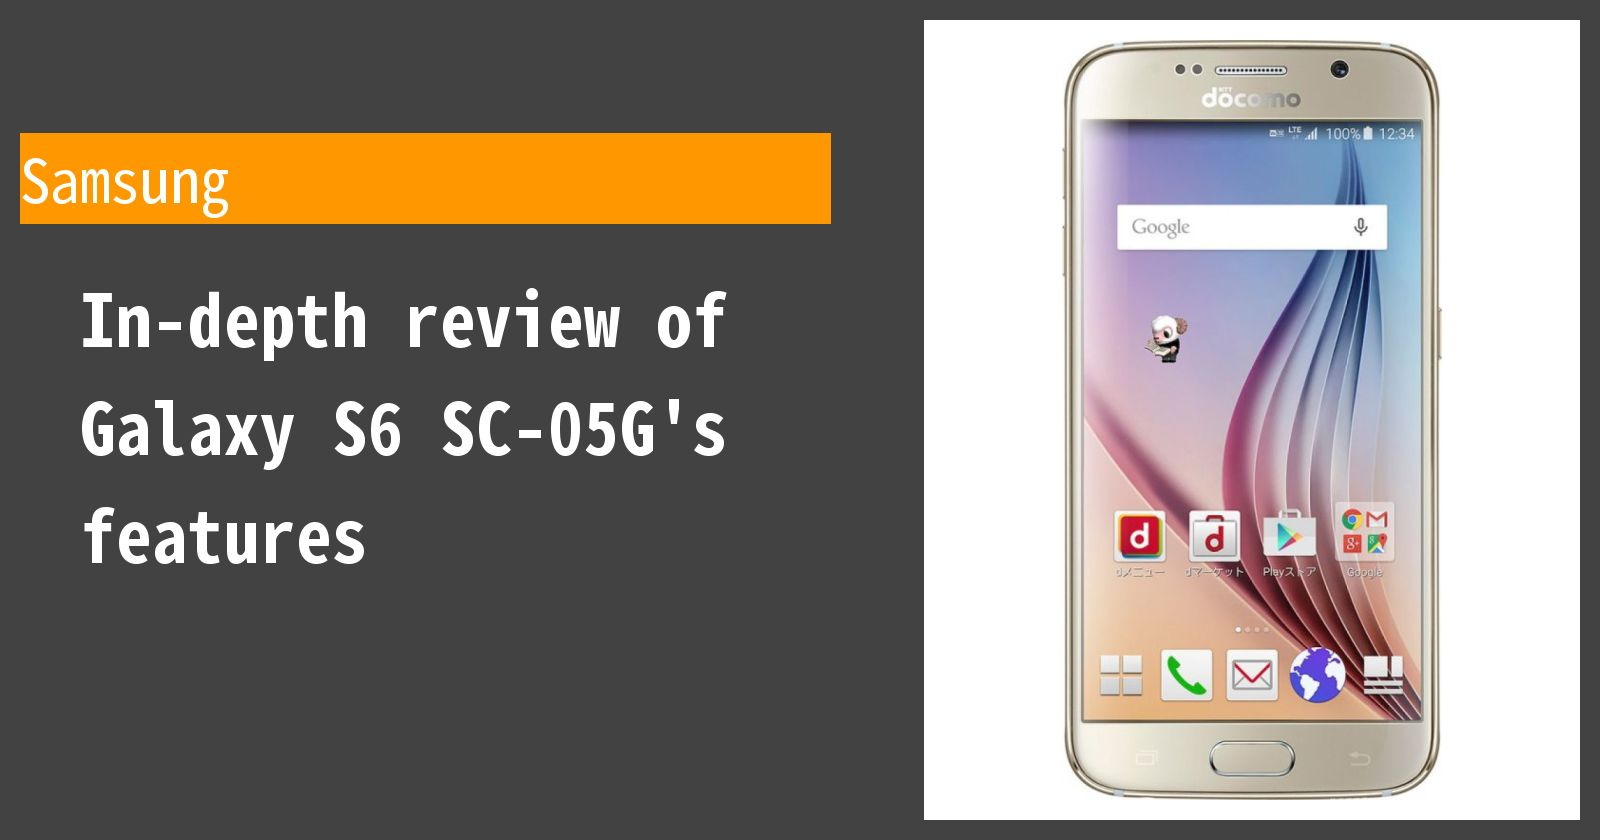 What are the advantages and disadvantages of Galaxy S6 SC